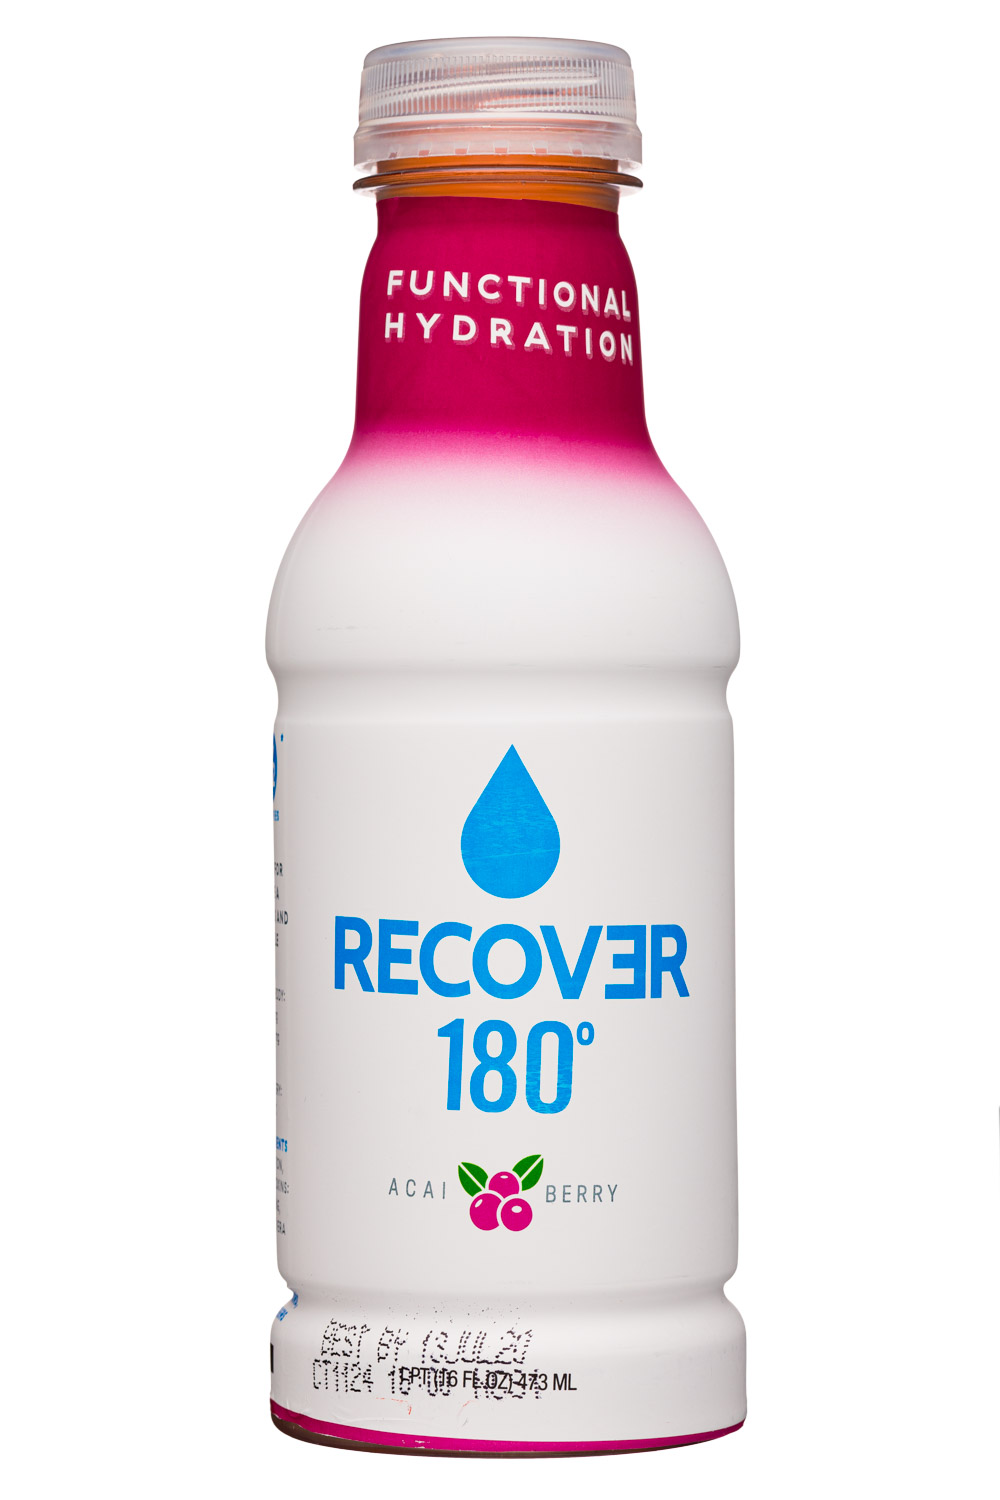 Recover 180°: Recover180-16oz-Hydration-AcaiBerry-Front